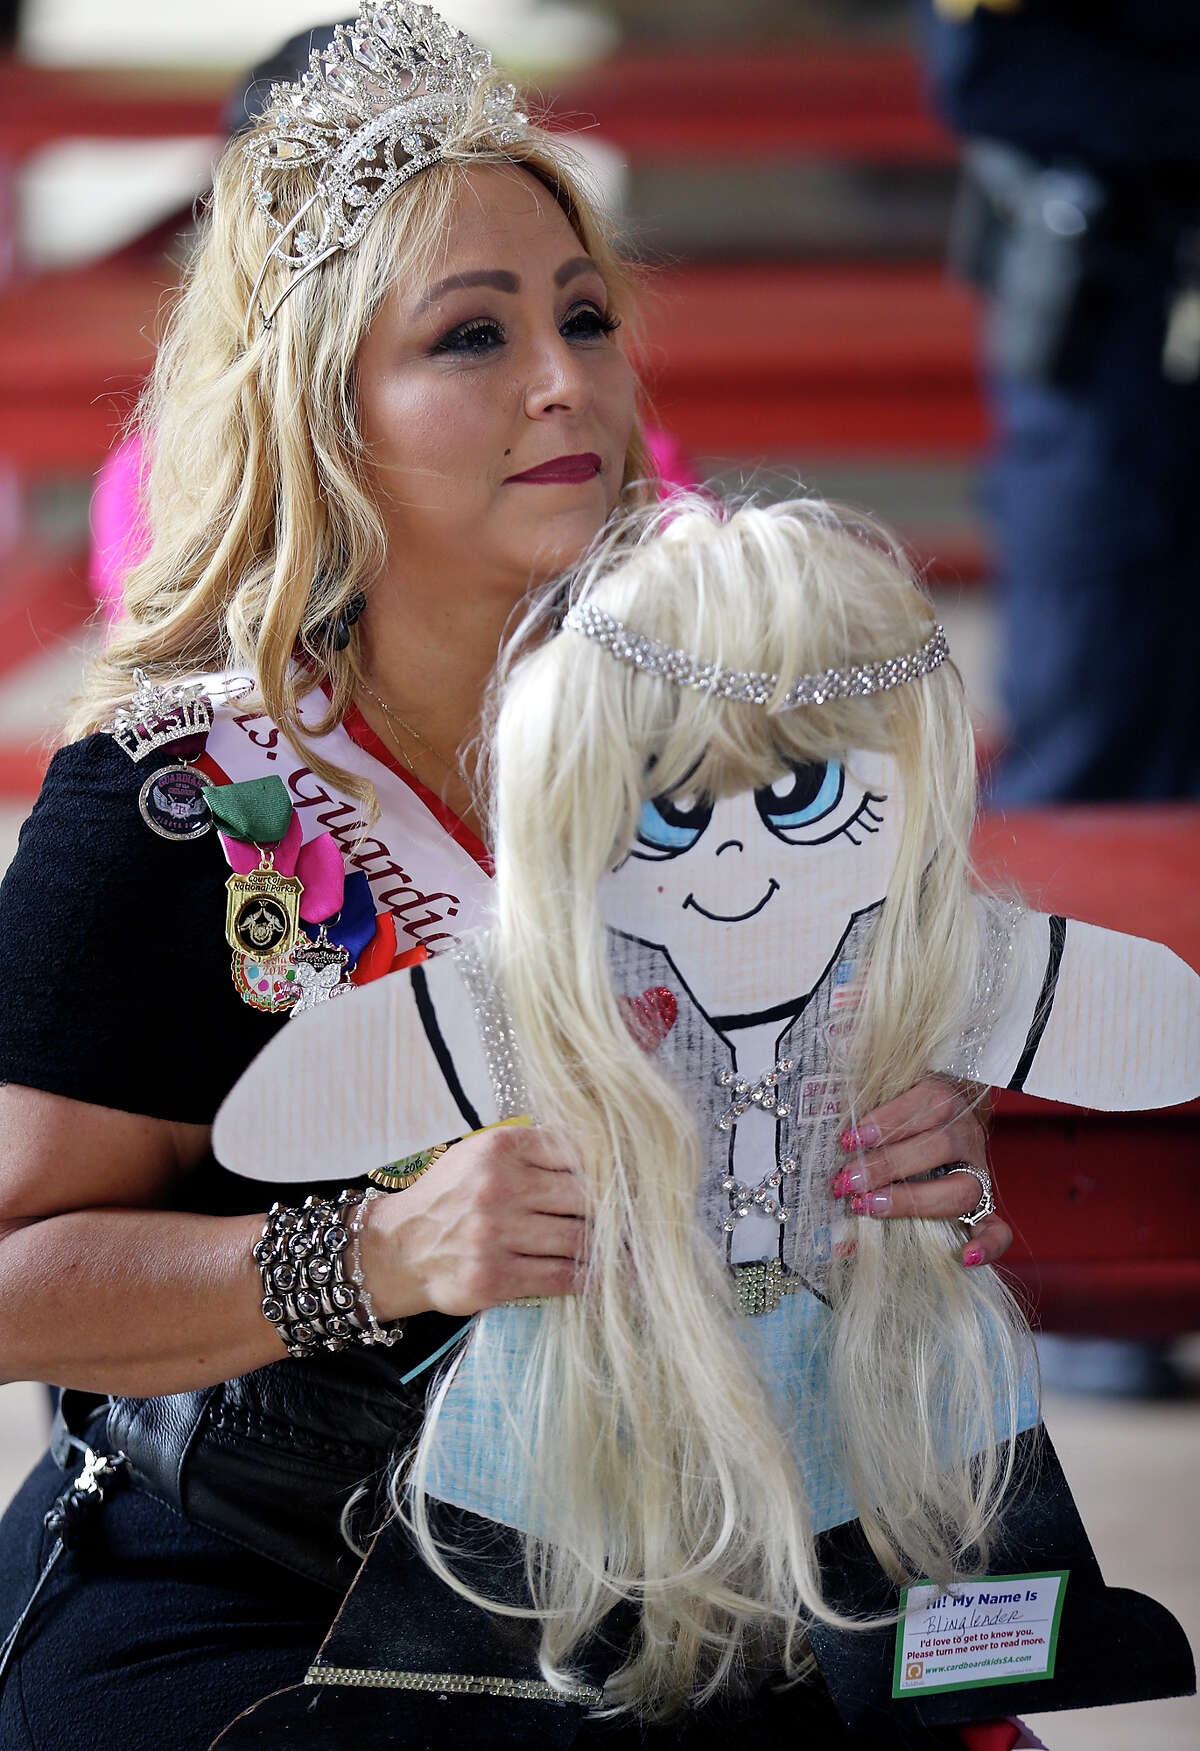 """Guardians of the Children Von Ormy chapter member Cindi """"Bling Leader"""" Segura holds her Cardboard Kid while listening to speakers during a press conference held Thursday April 9, 2015 at the Joske Pavilion in Brackenridge Park. April is National Child Abuse Prevention month."""